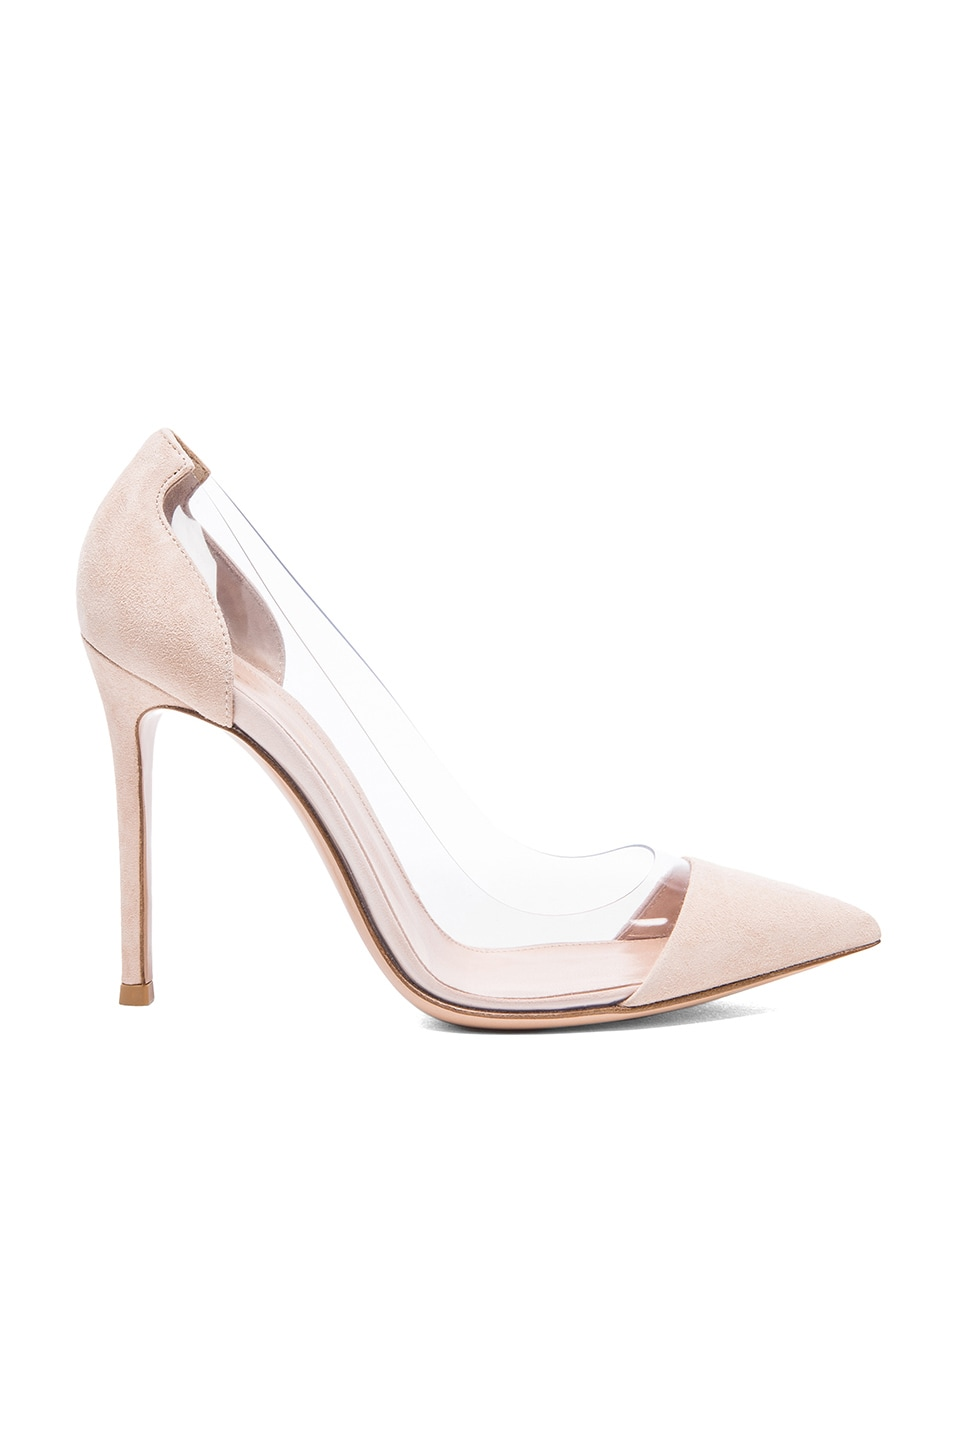 Image 1 of Gianvito Rossi Suede Plexi Pumps in Nude